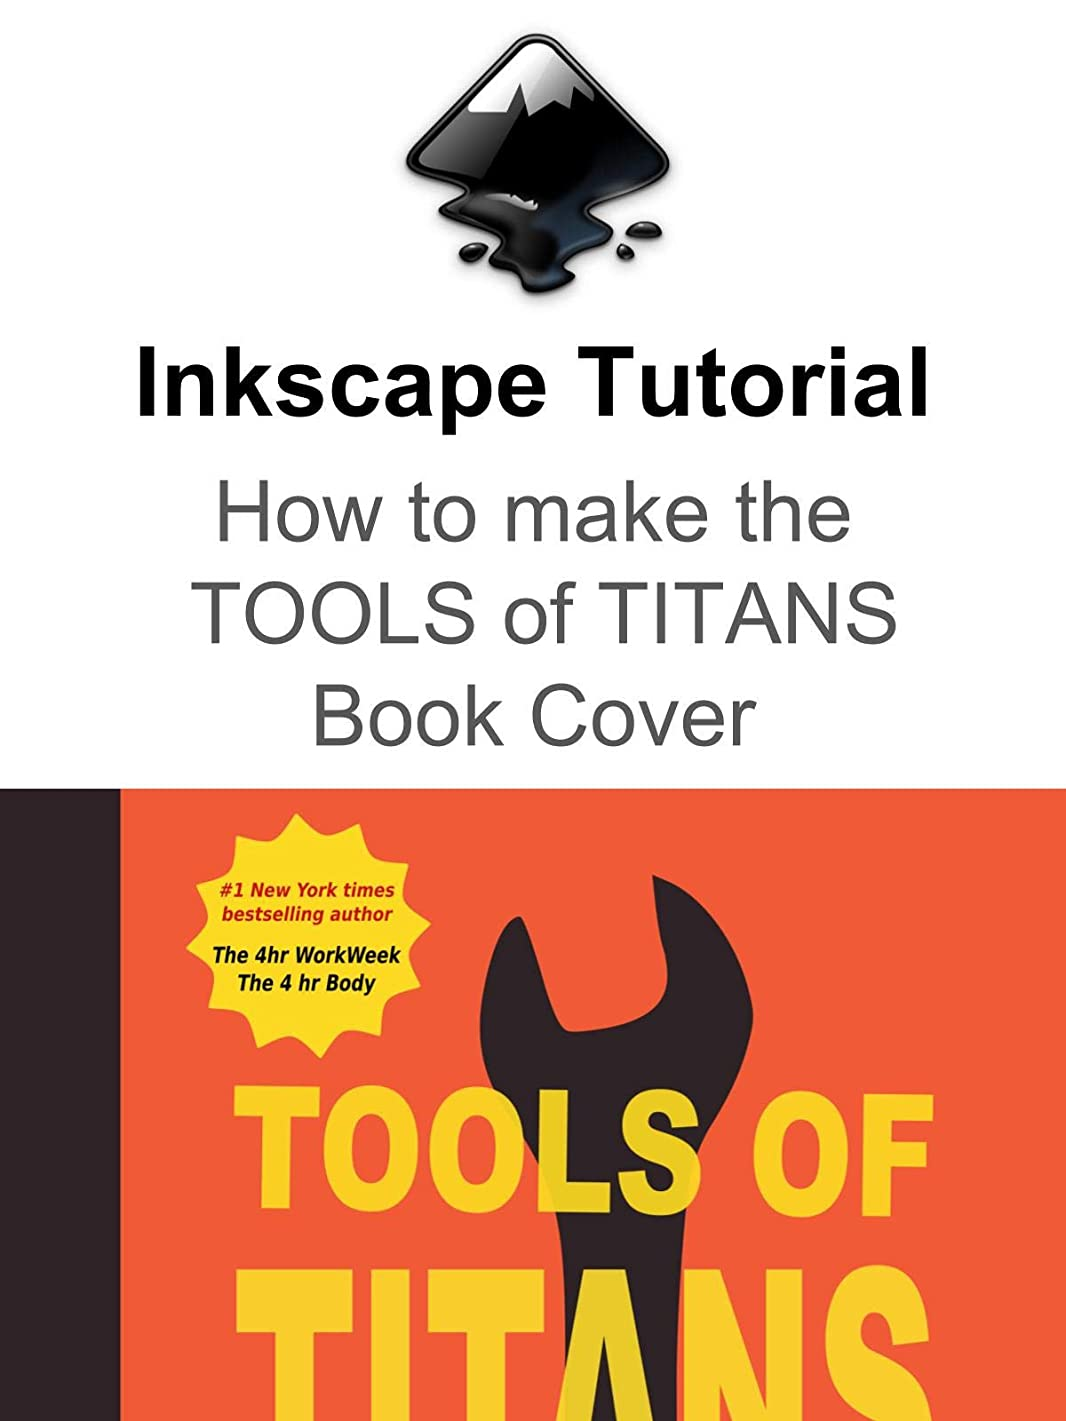 Tools of Titans Book Cover Inkscape Tutorial